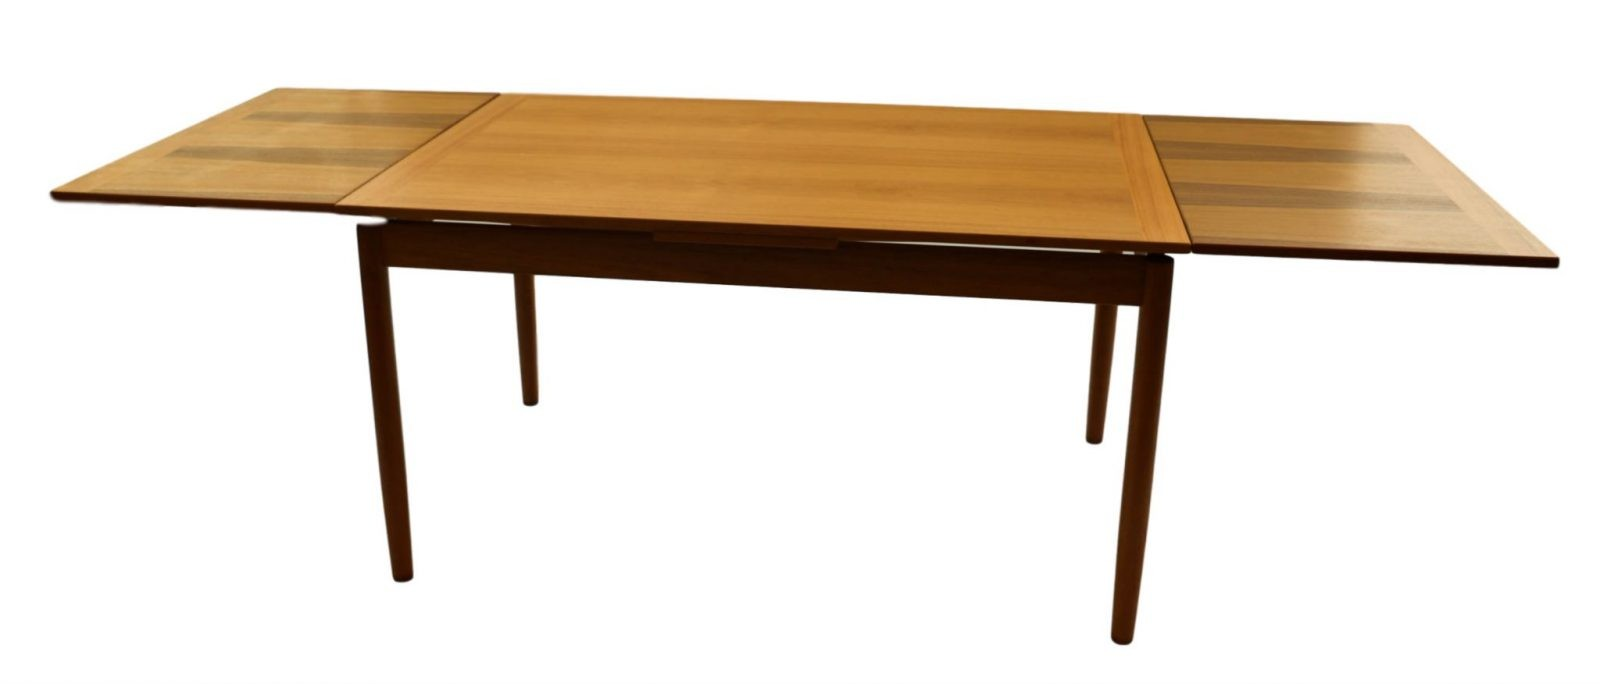 Modern Extending Dining Table Danish Mid Century Modern Teak Extendable Dining Table